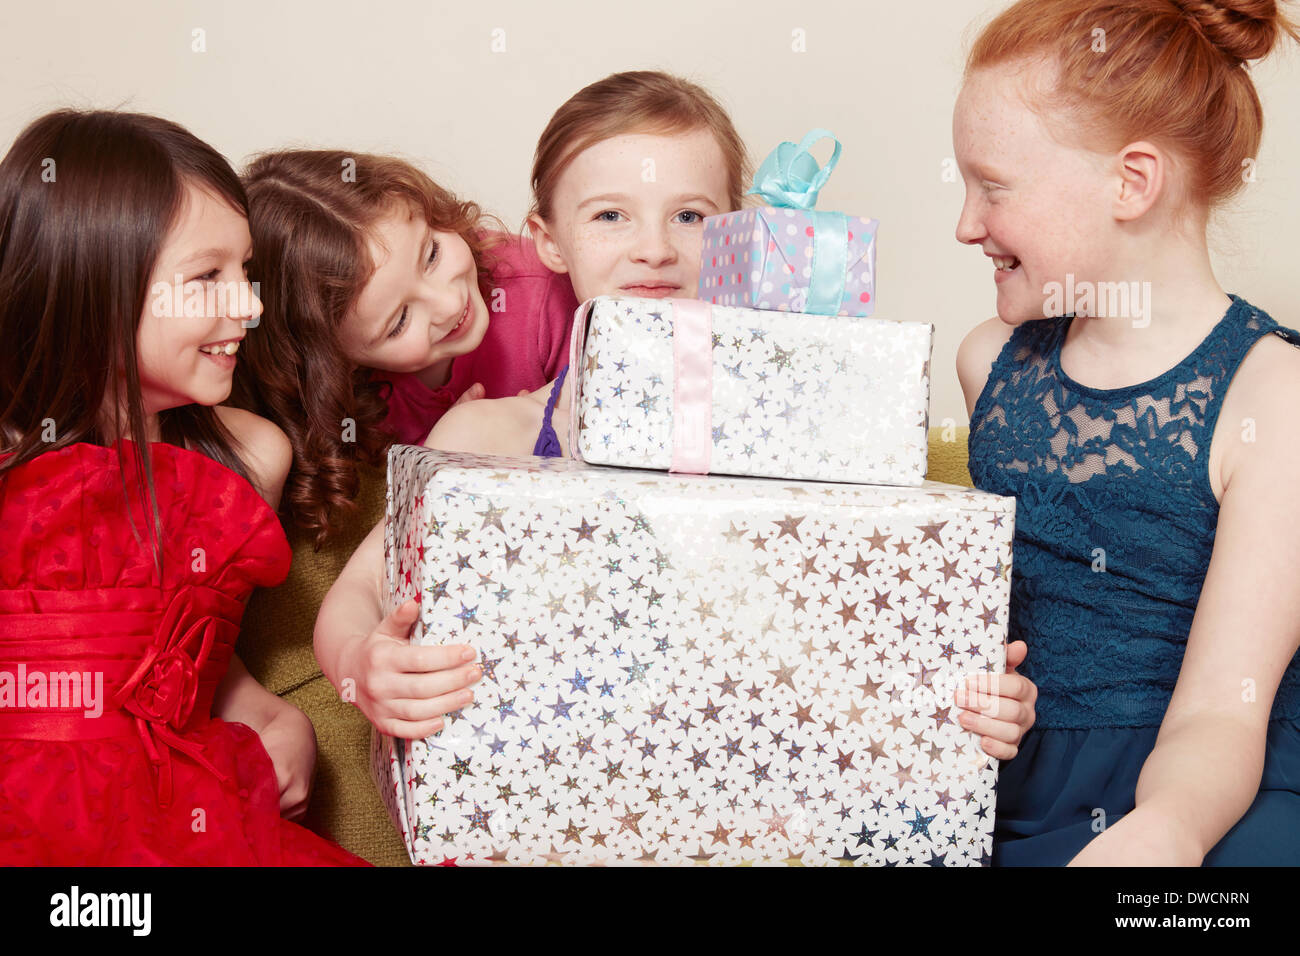 Girl holding birthday present with friends - Stock Image